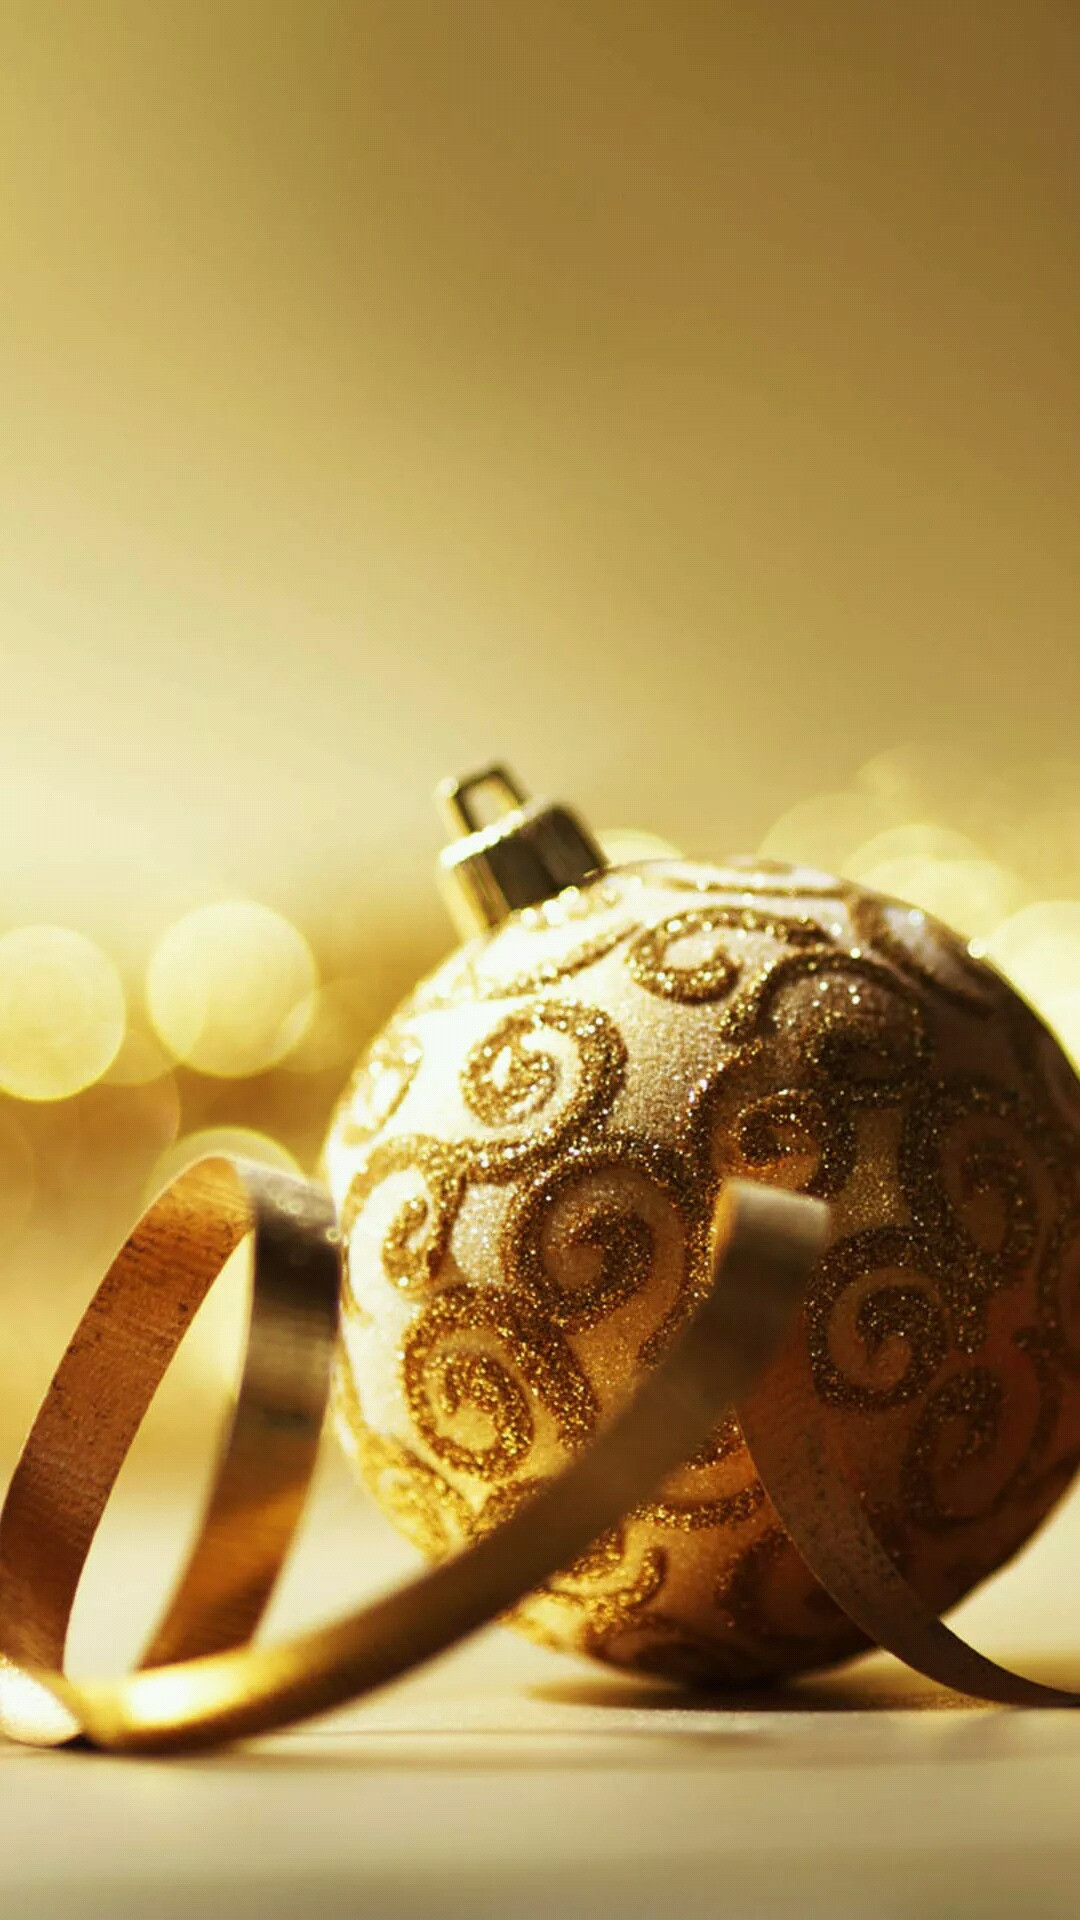 Elegant Christmas ornaments Best Of Download Golden Elegant Christmas ornaments 1080 X 1920 Of Contemporary 40 Images Elegant Christmas ornaments